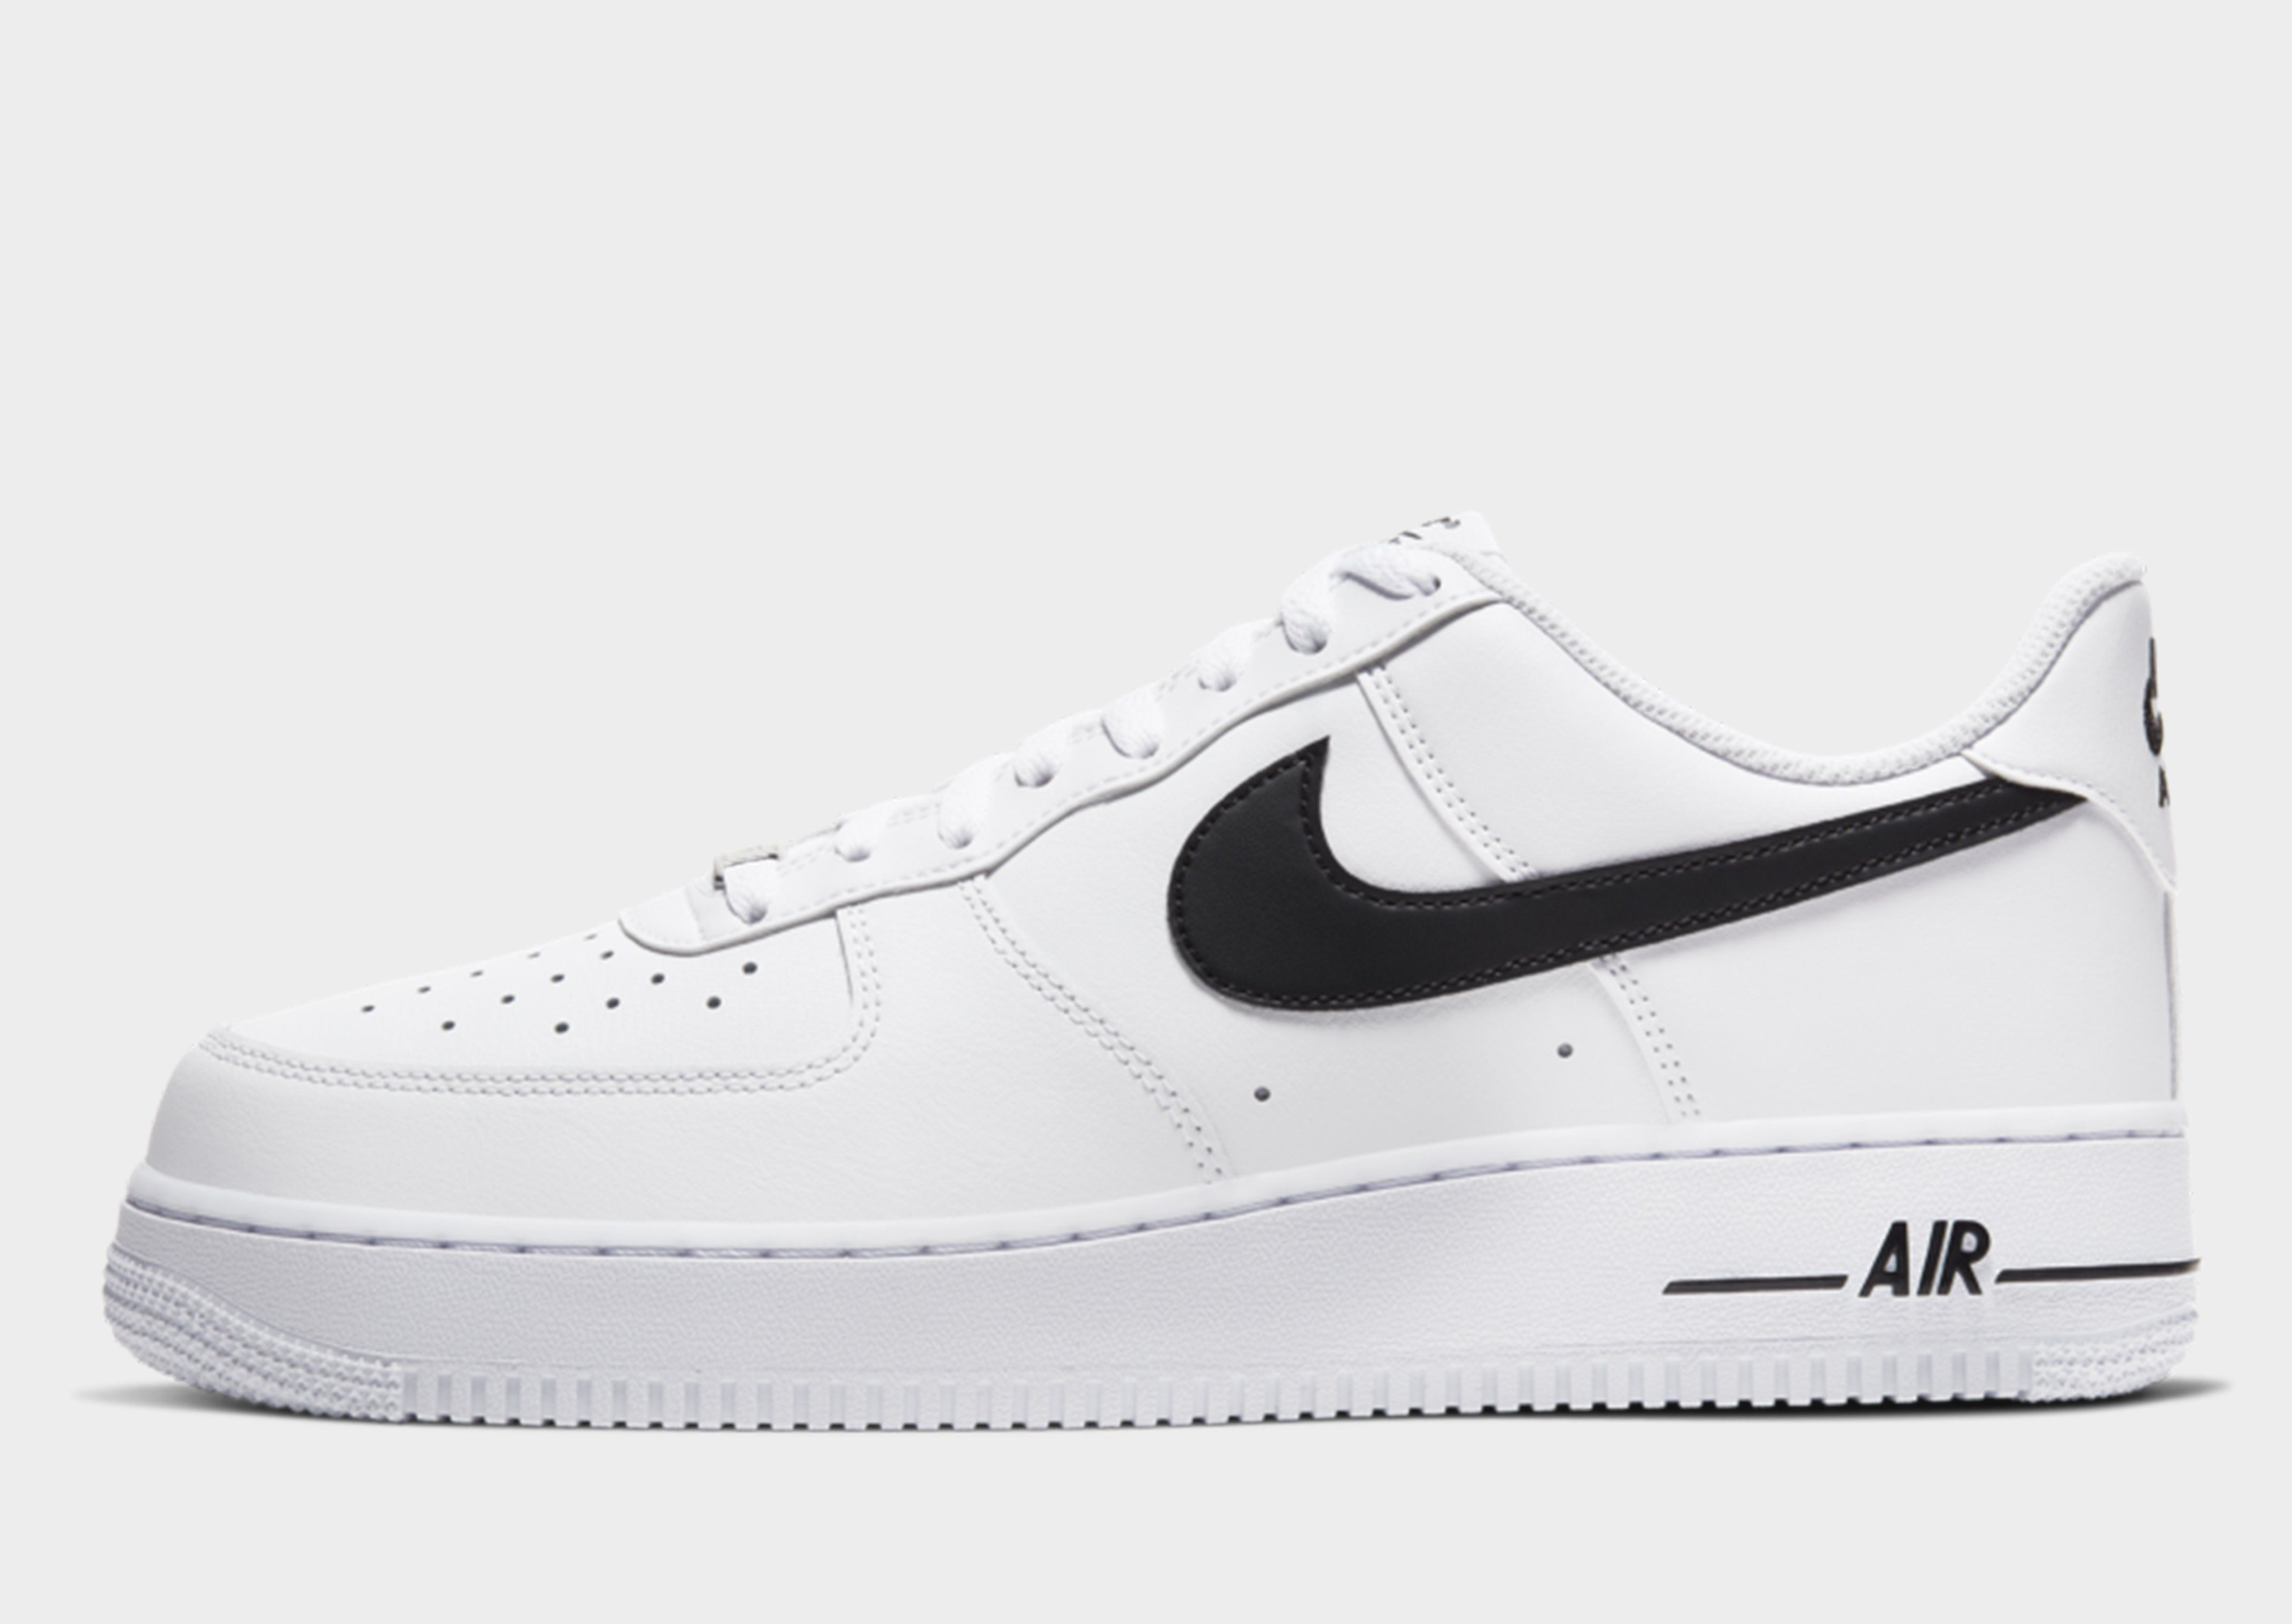 Nike Air Force 1 '07 - Compra online Nike Air Force 1 '07 en ...